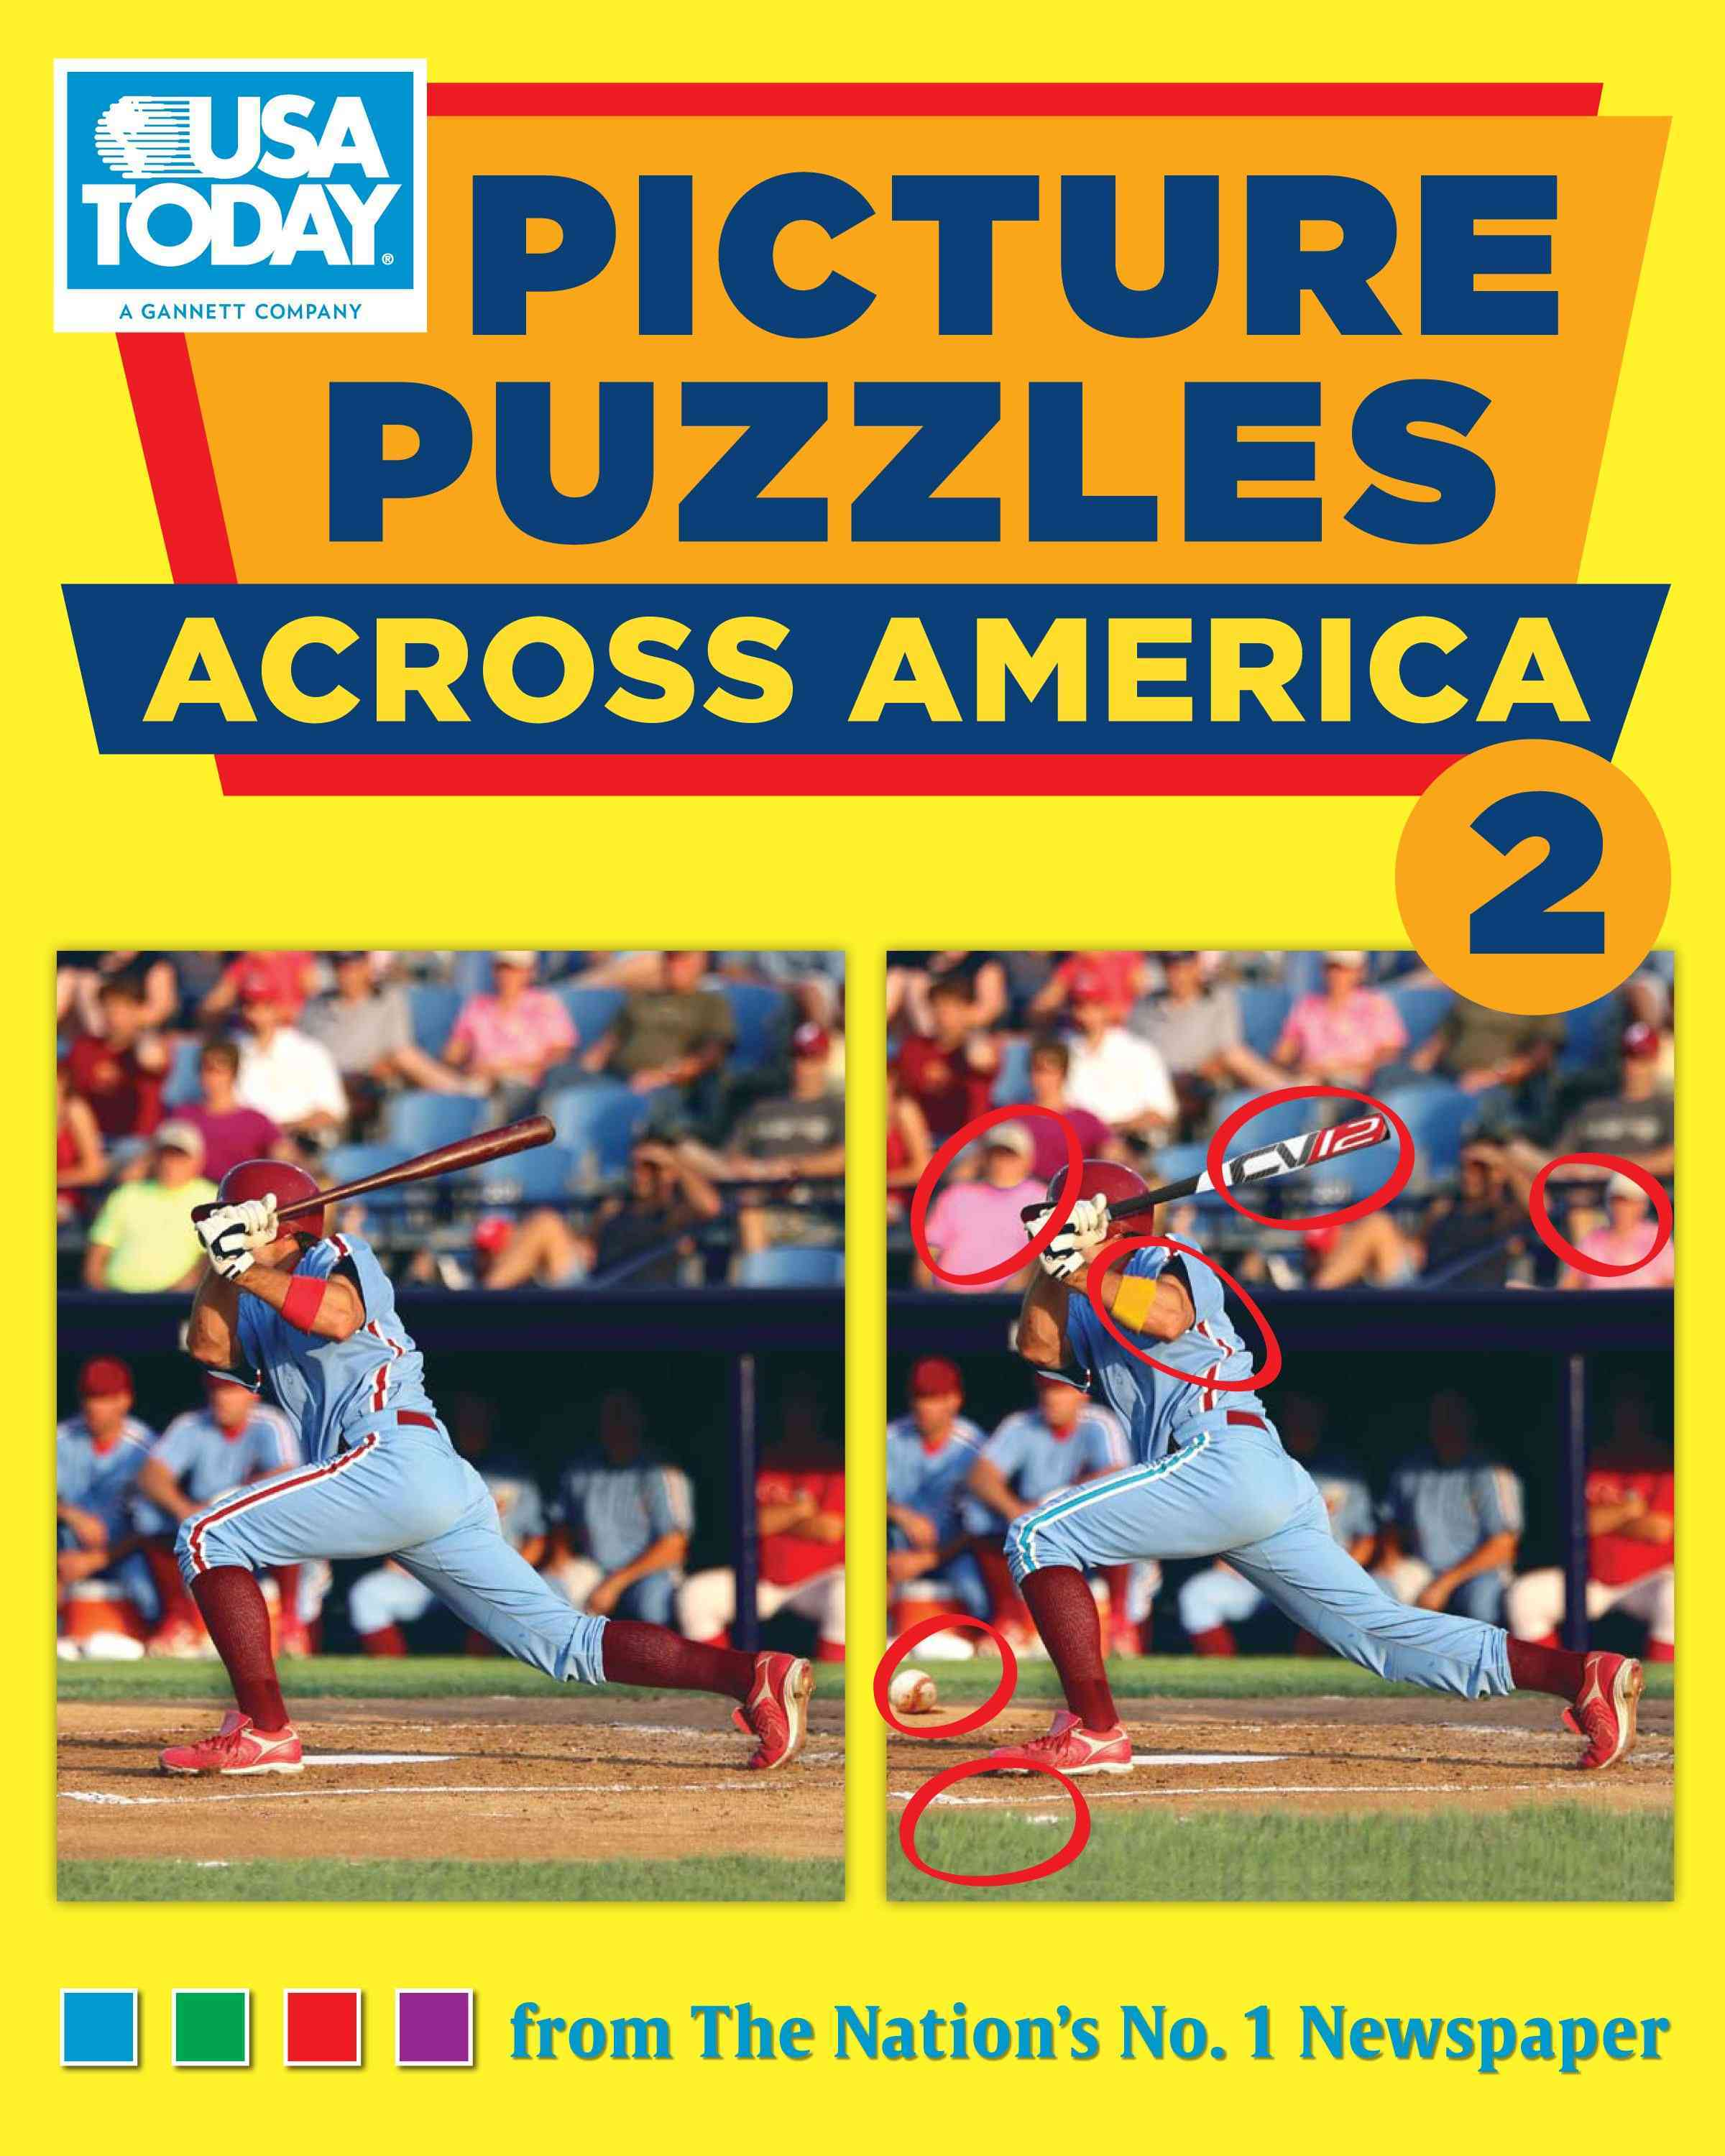 USA Today Picture Puzzles Across America 2 (Paperback)